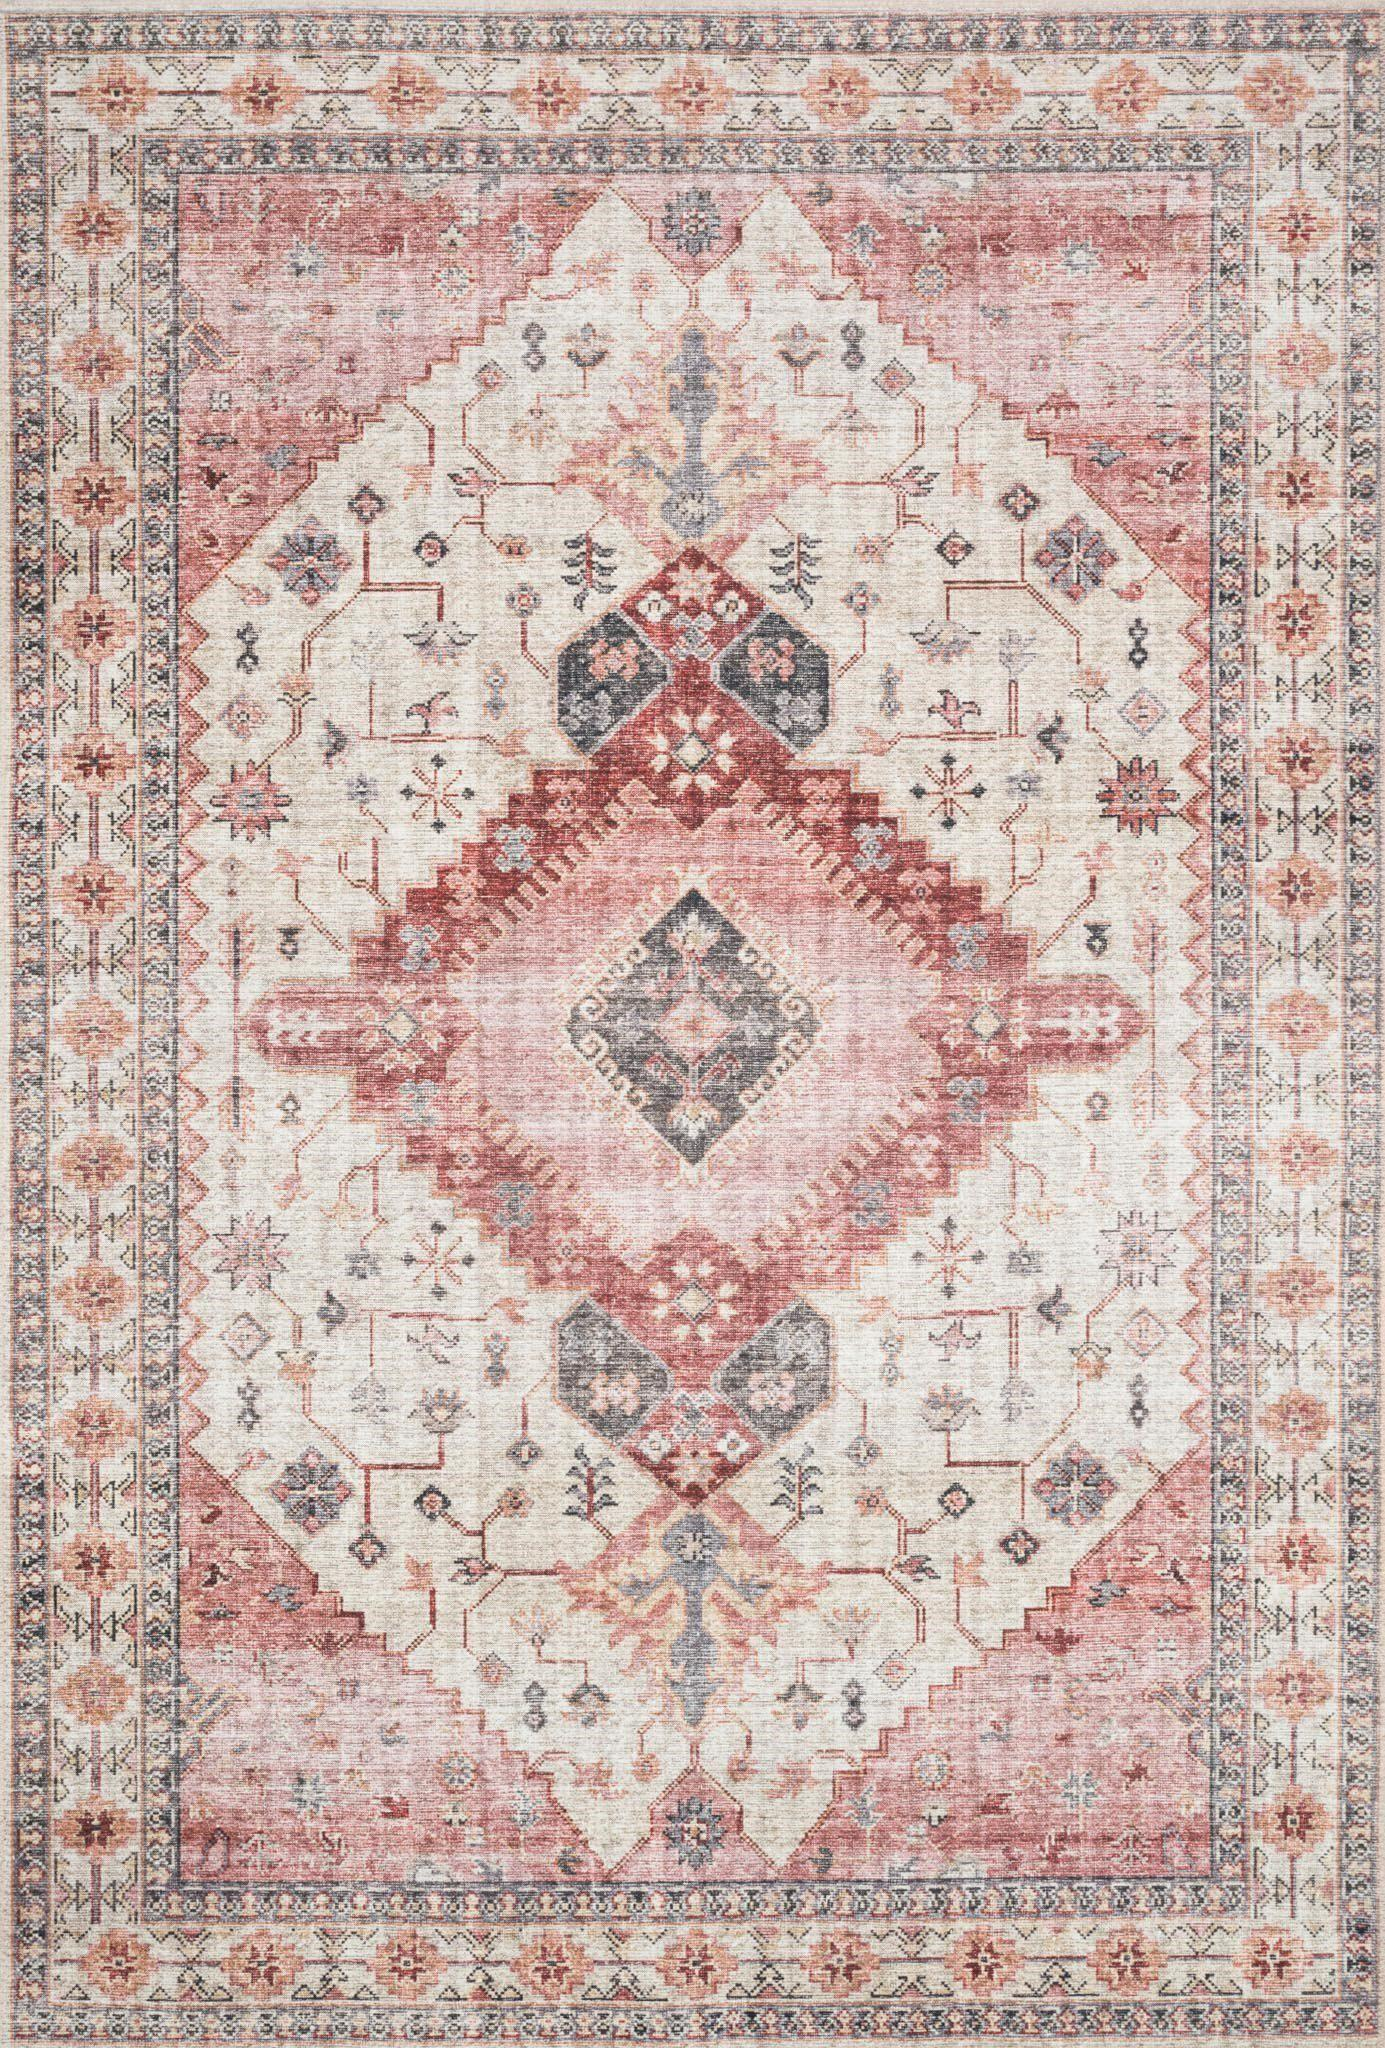 "Skye SKY-02 Ivory / Berry Area Rug-Area Rug-Loloi-1'-6"" x 1'-6"" Square-The Rug Truck"